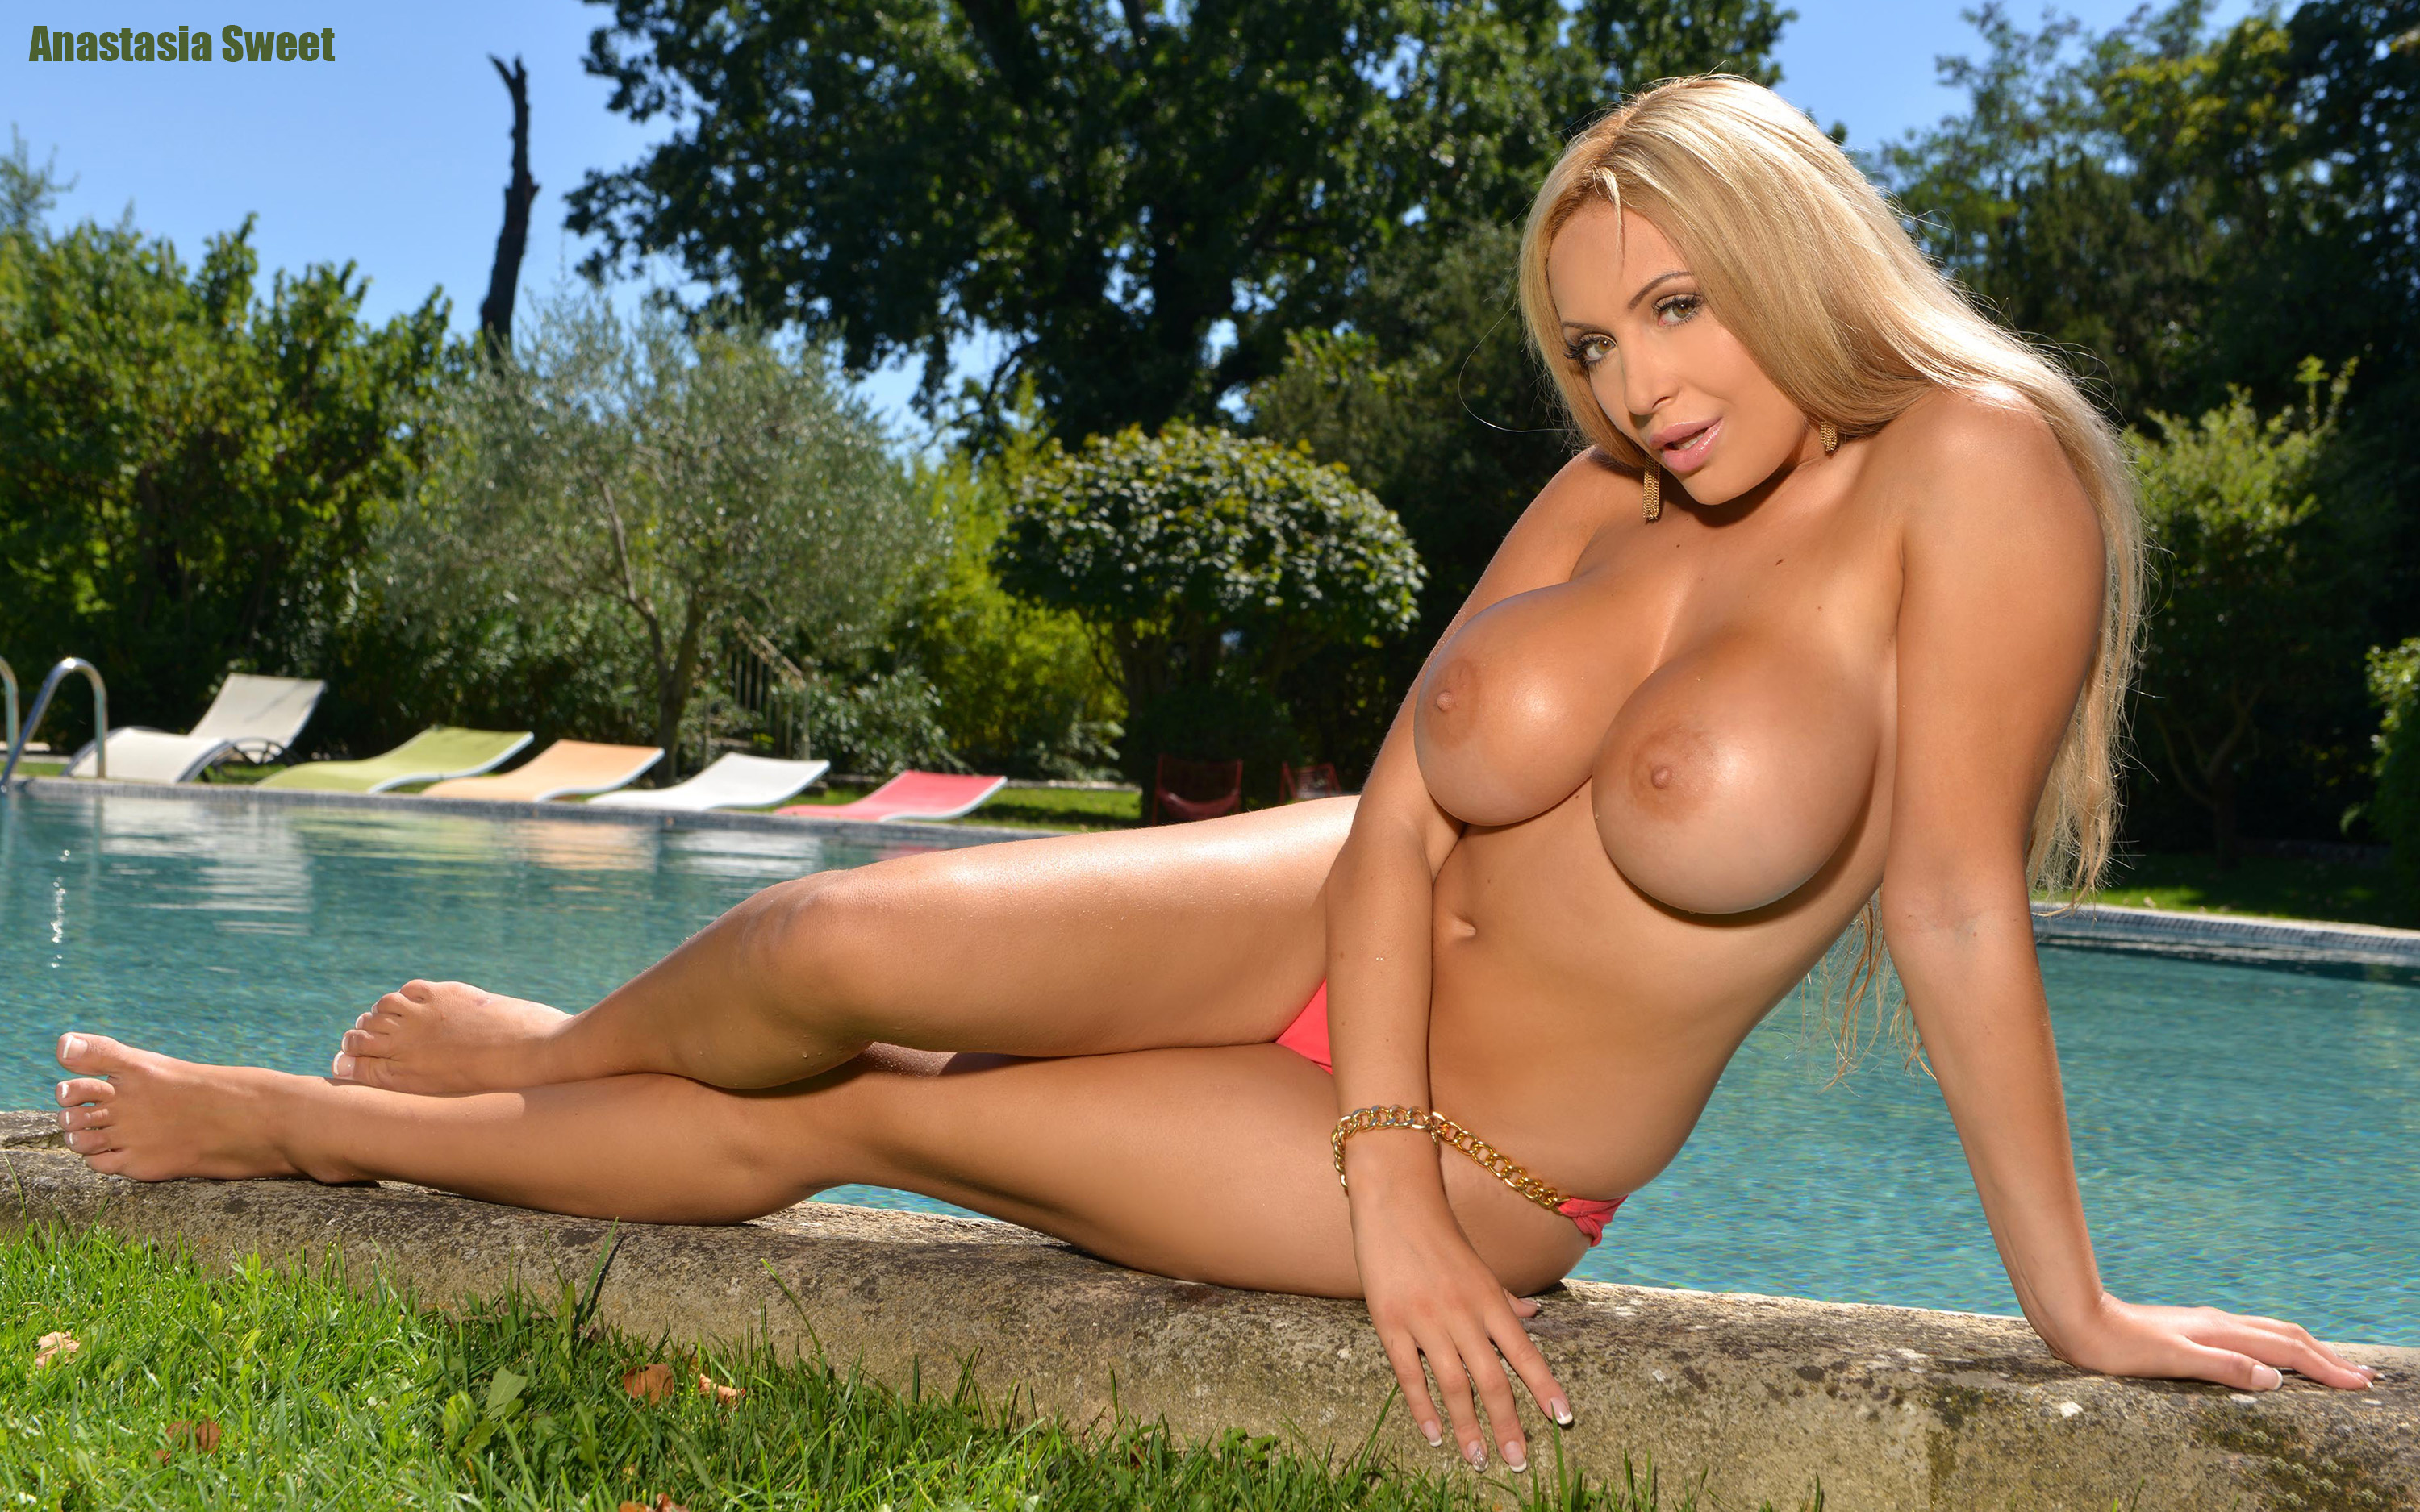 Wallpaper Anastasia Sweet, Hot, Blonde, Big, Tits, Amazing -1458